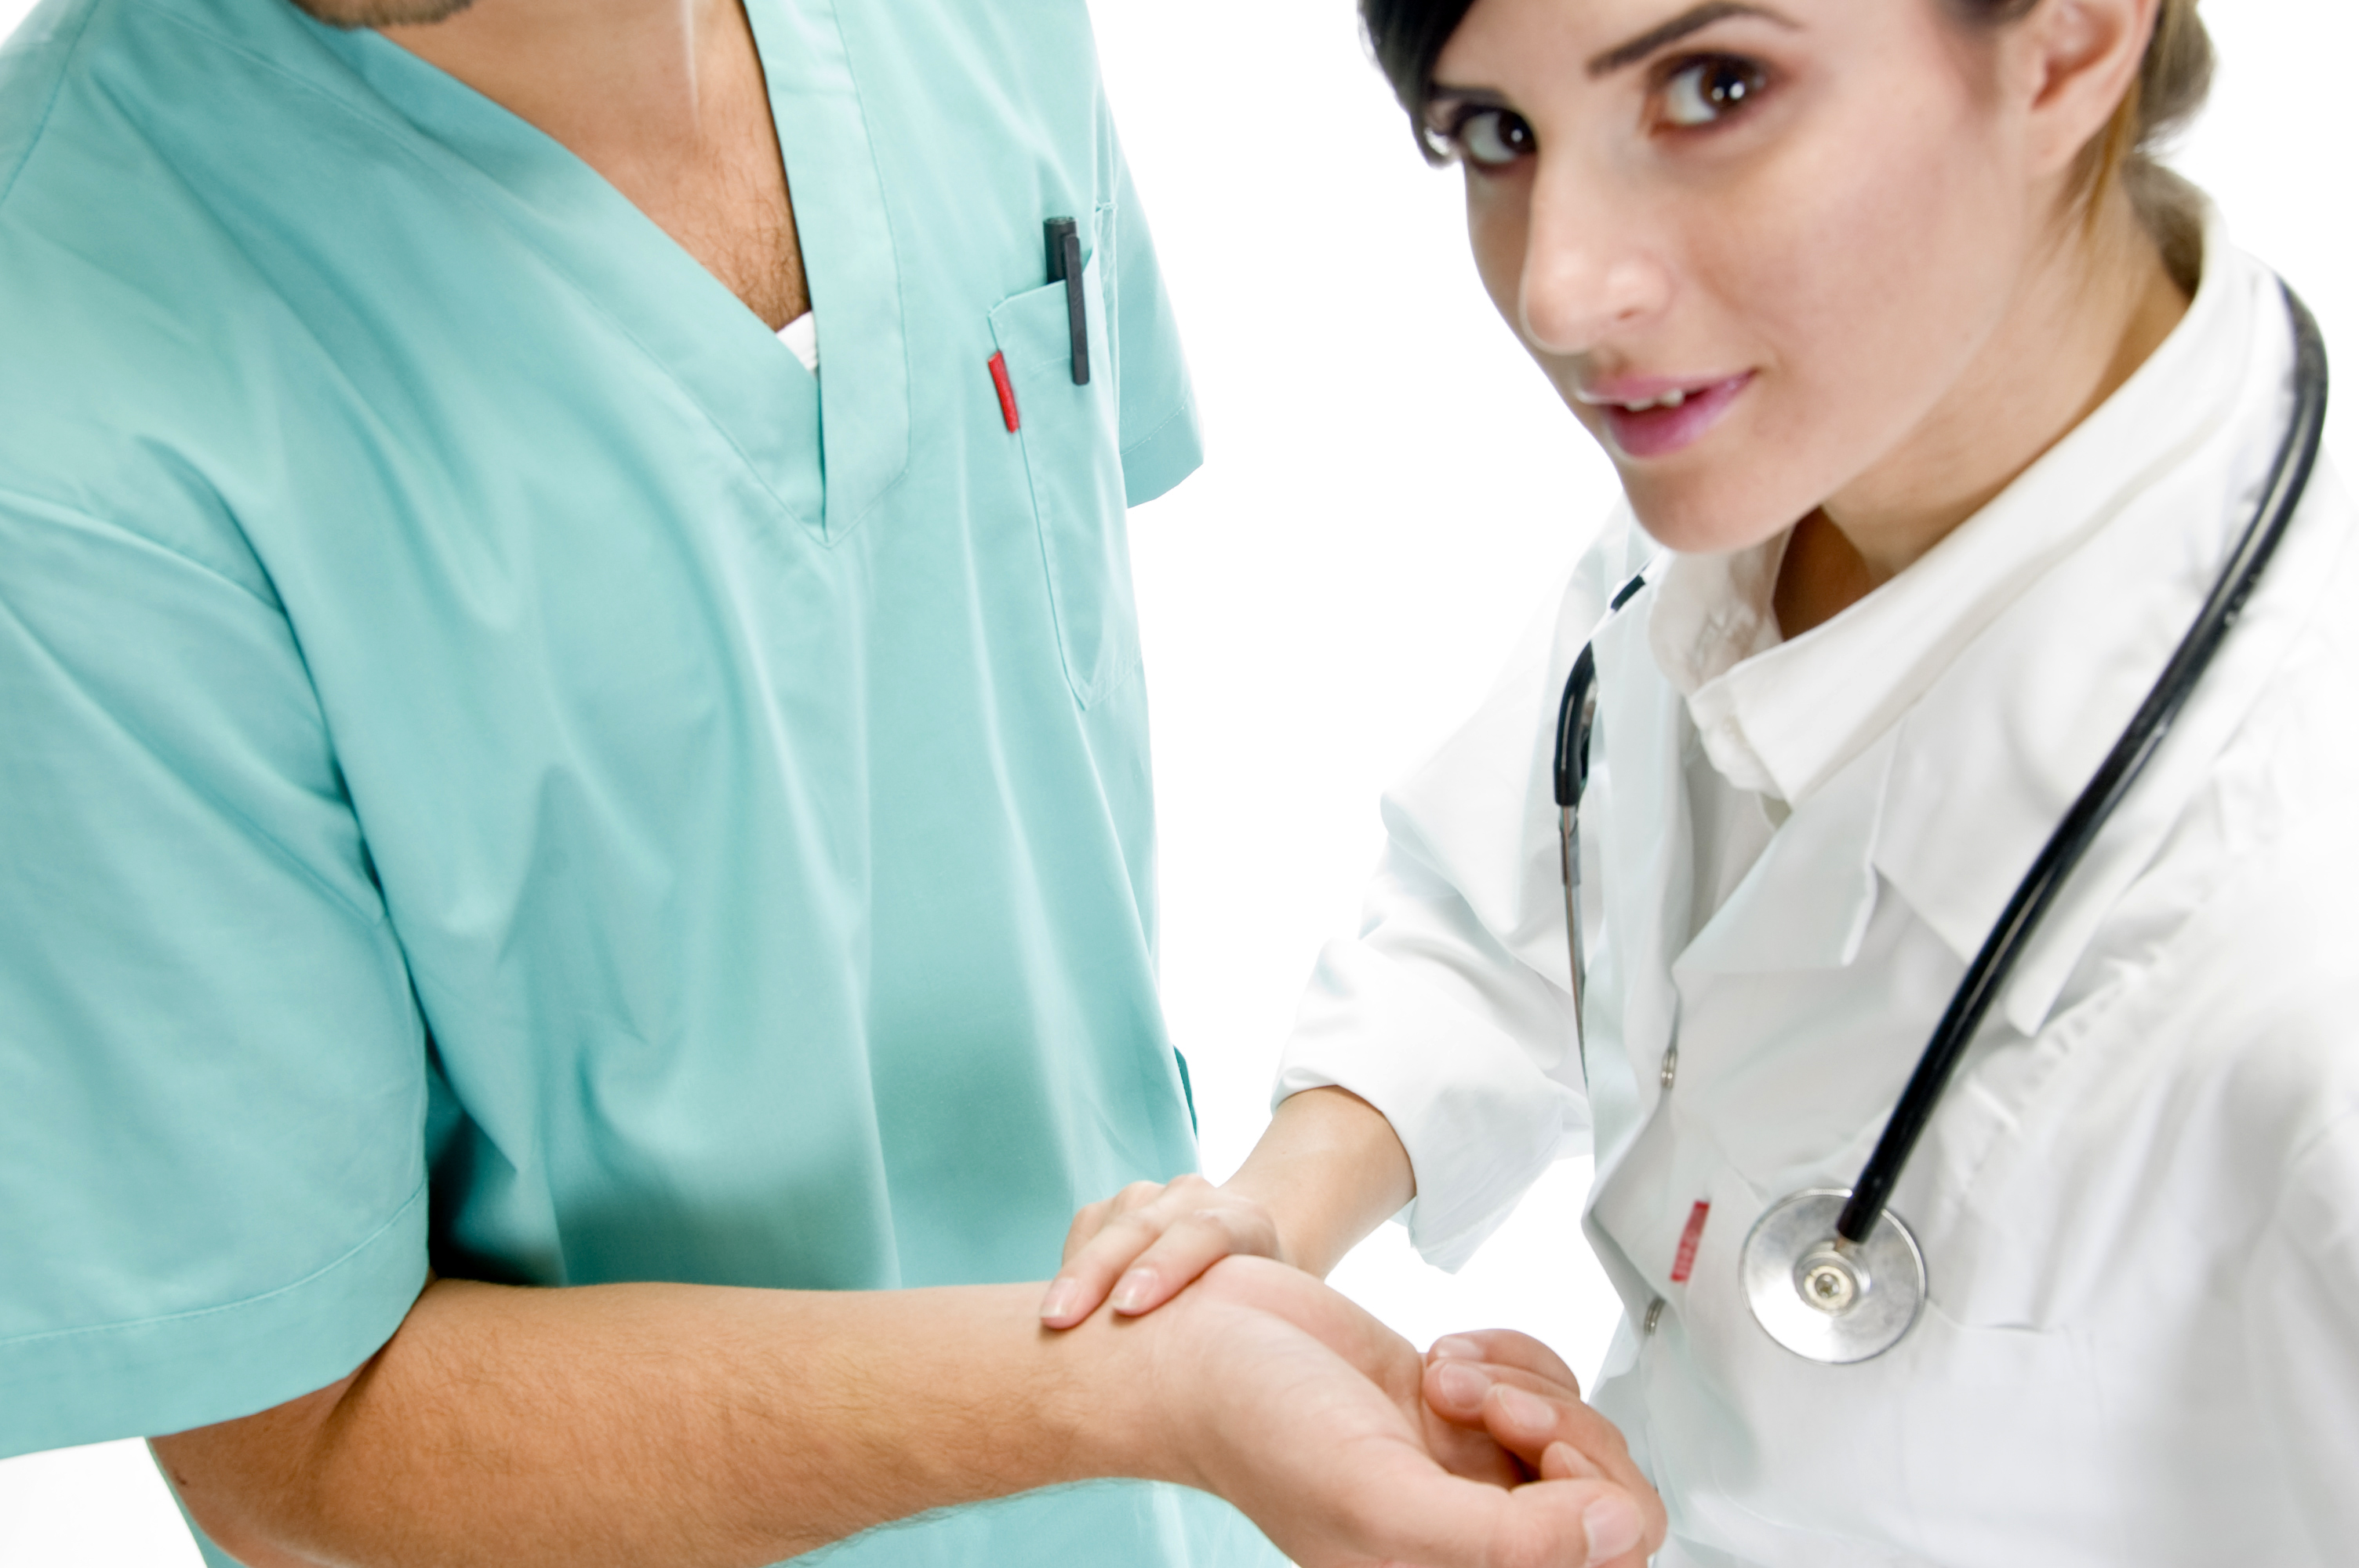 young nurse checking pulse of patient